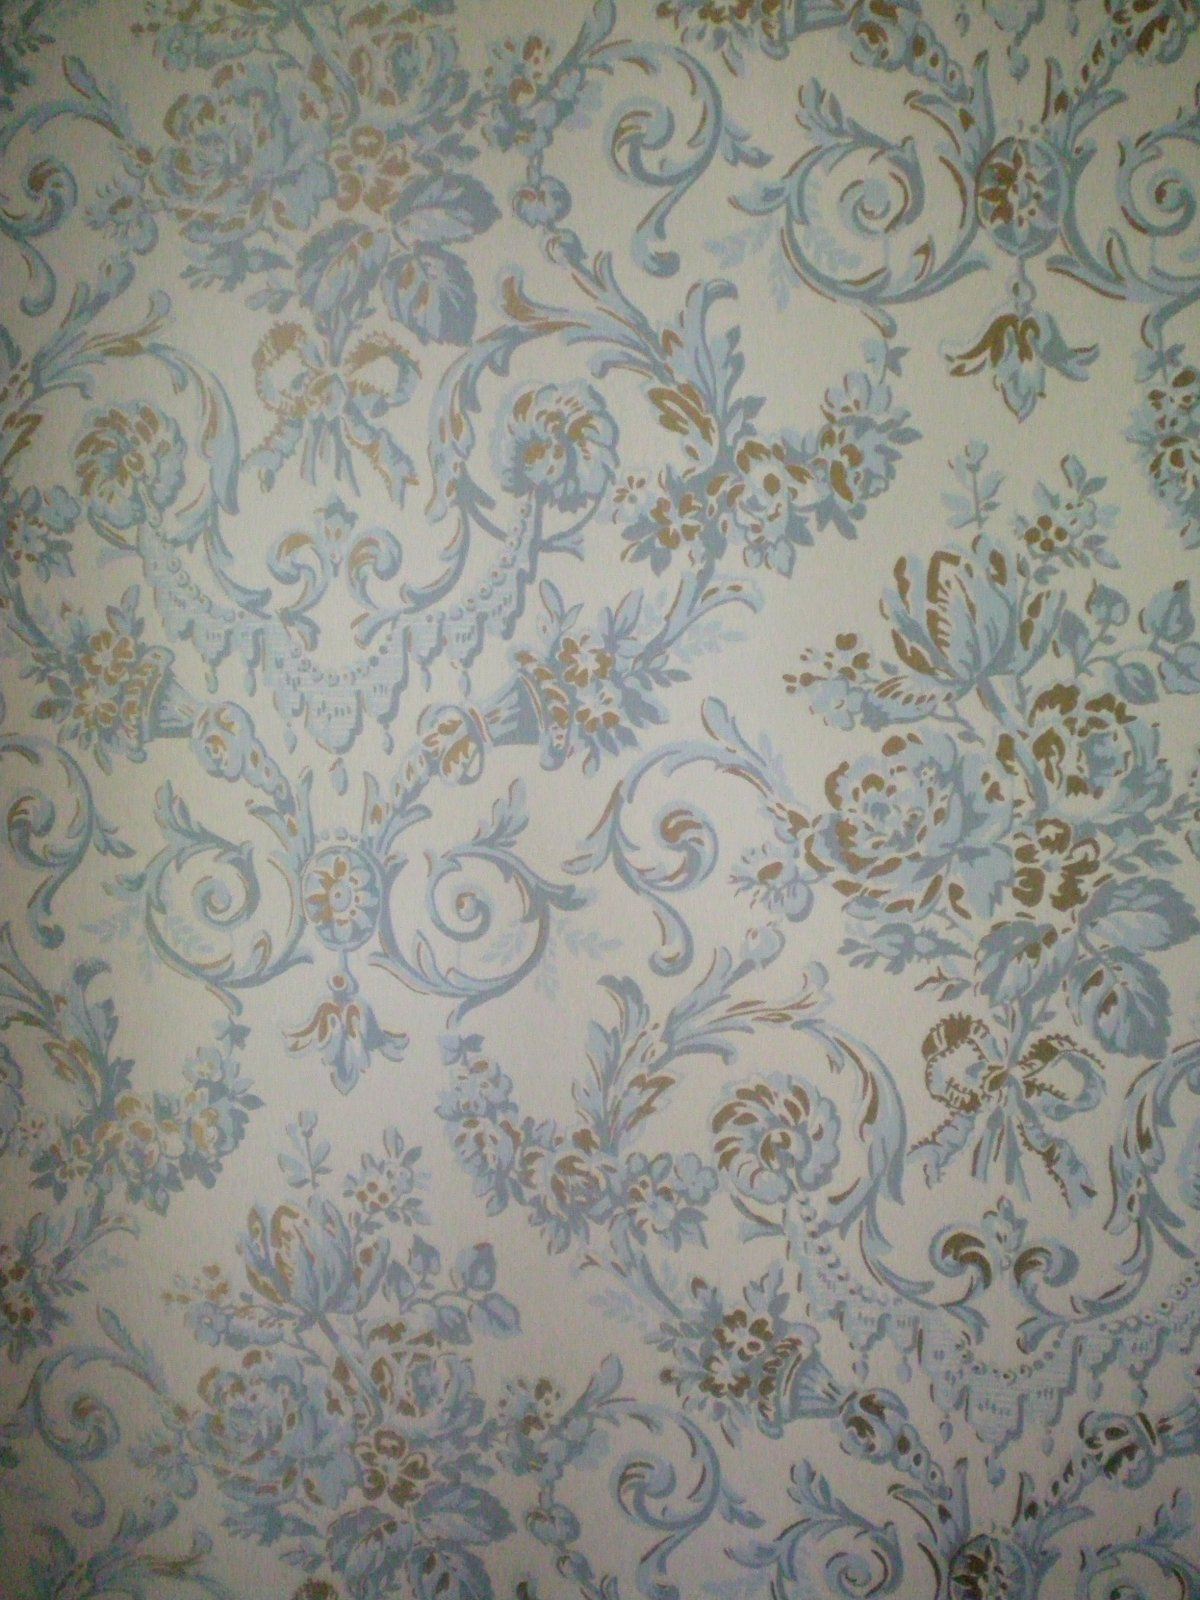 master piece  Victorian wallpaper